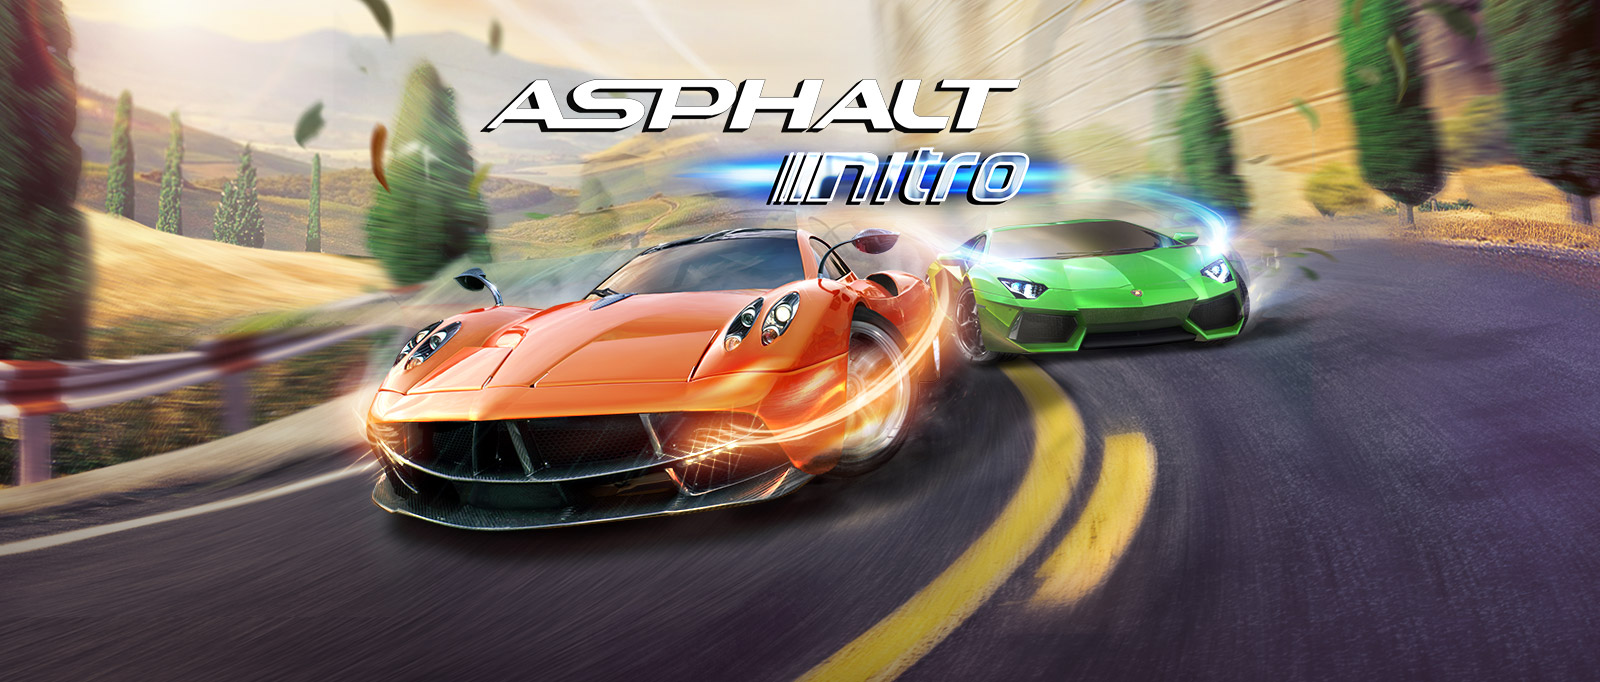 Asphalt 7 Mobile Game S